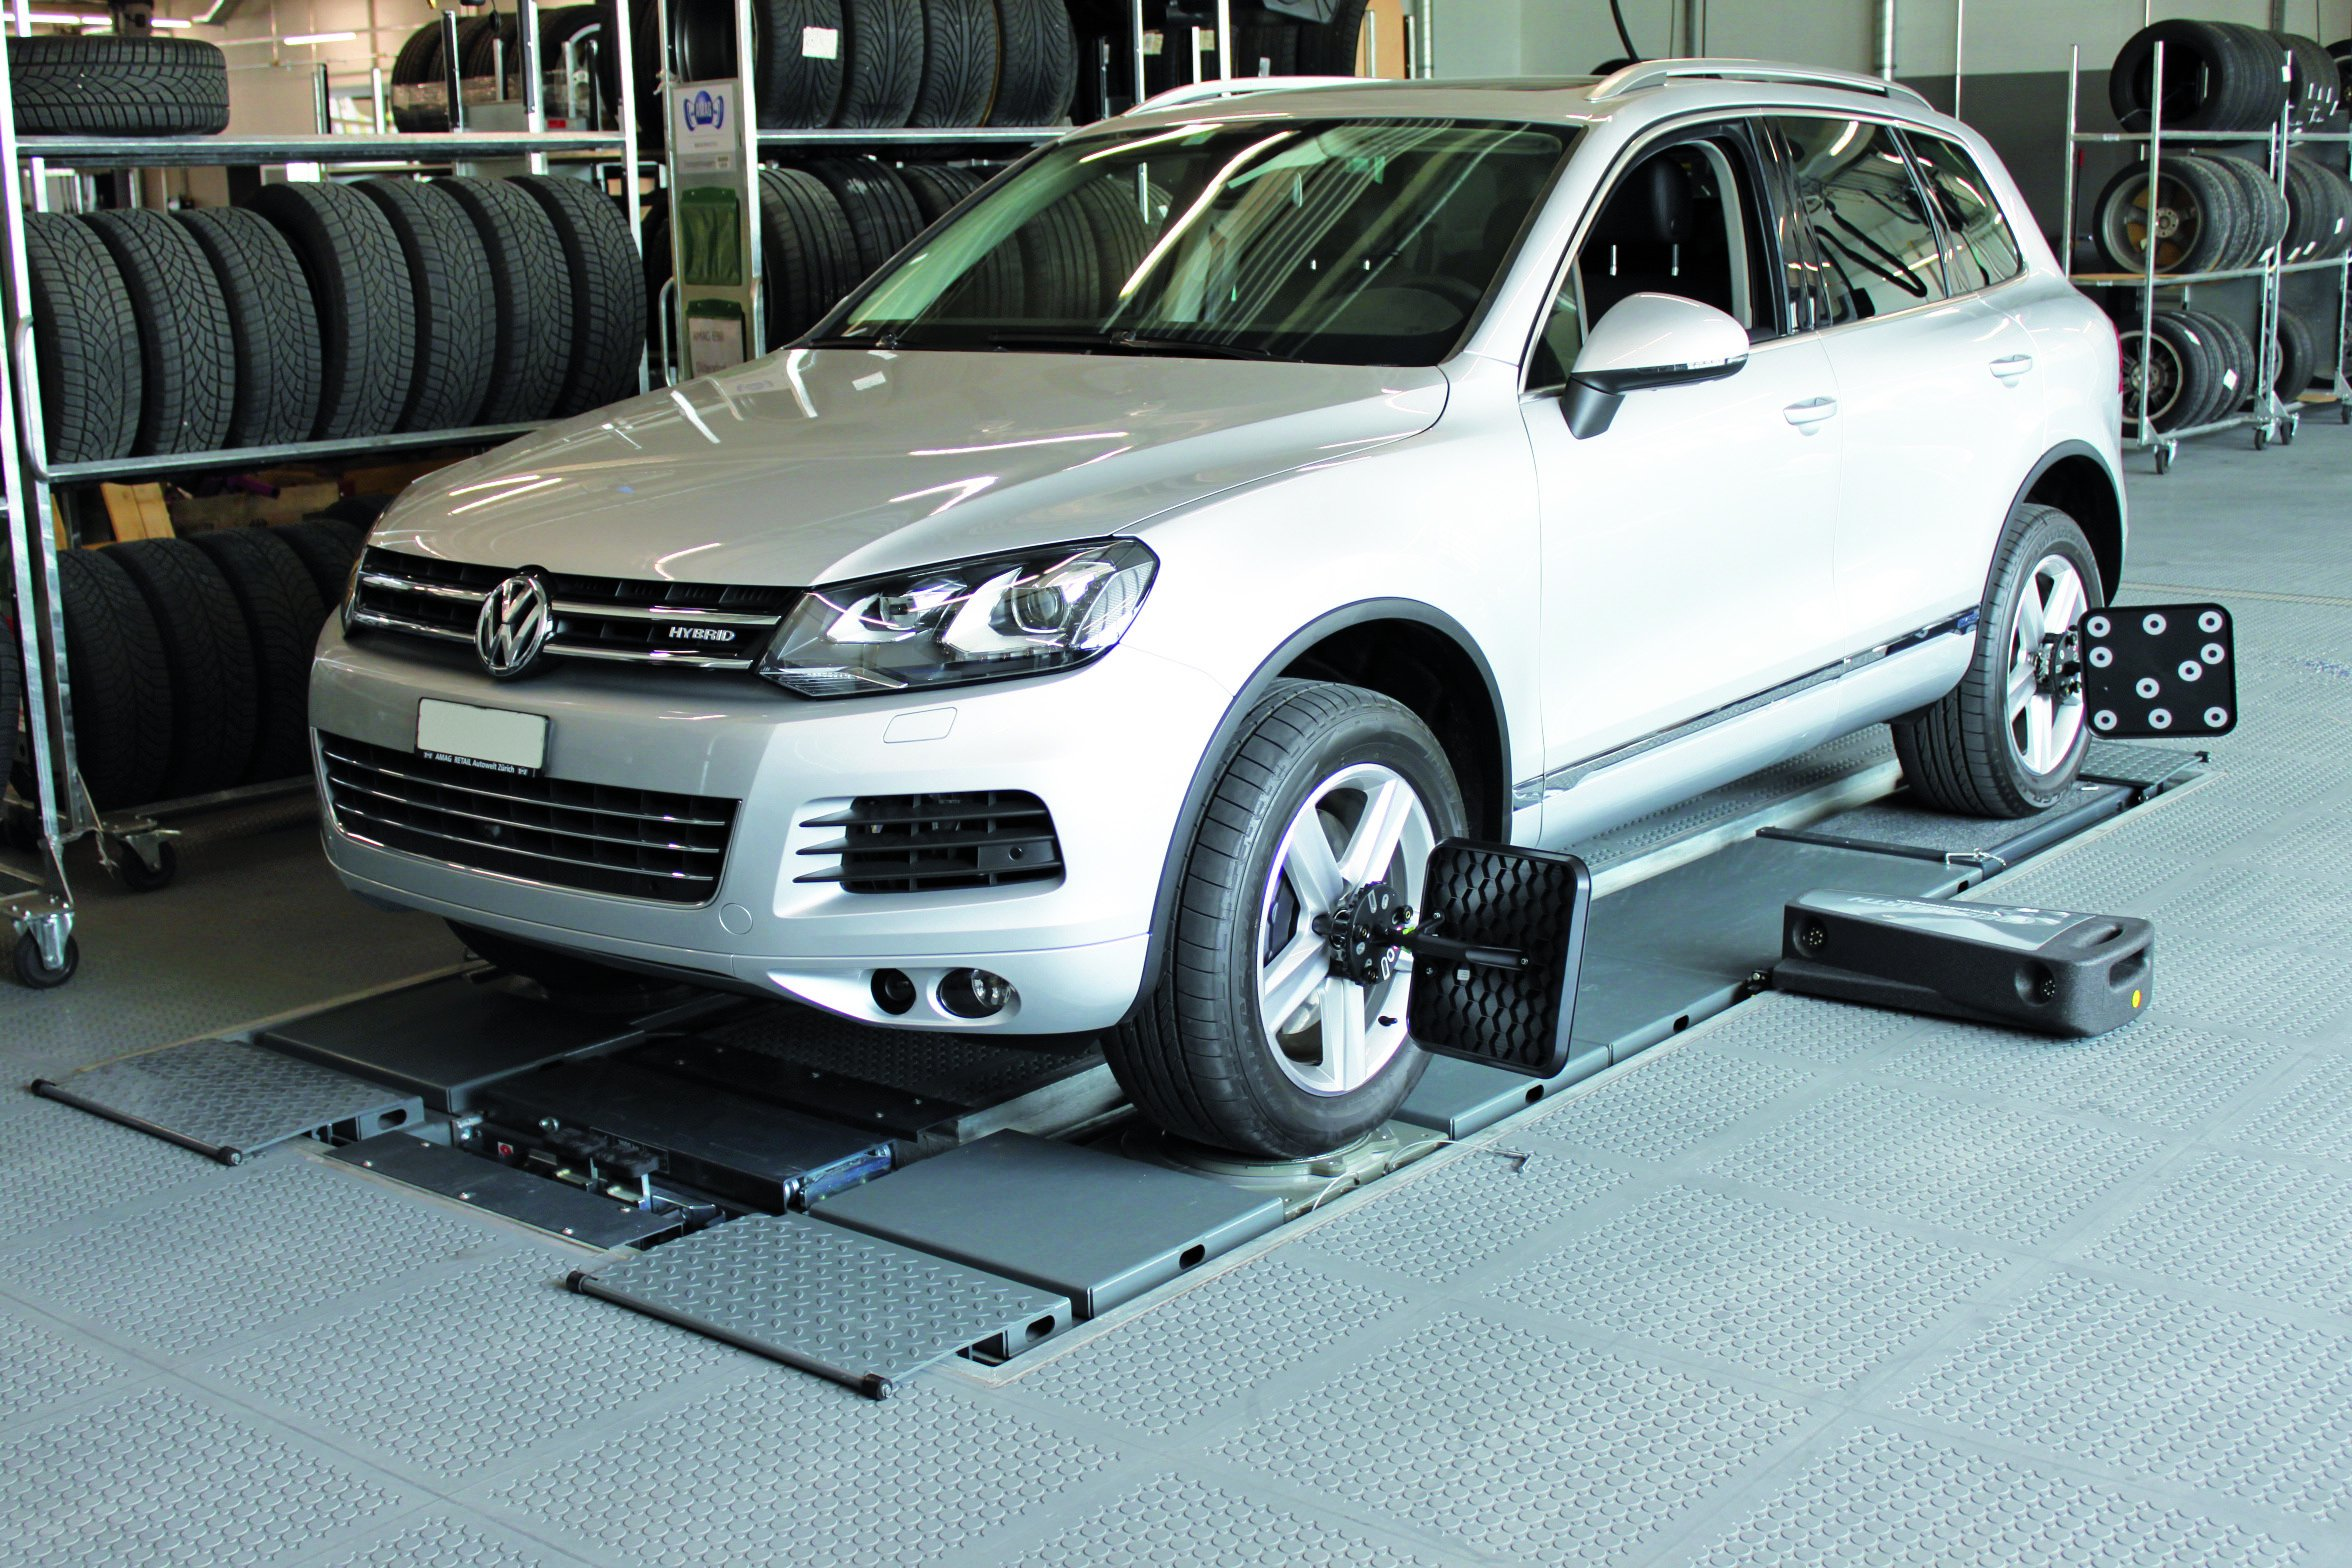 Automotive Wheel Alignment Scissor Lift - DUO CM 4 (8)